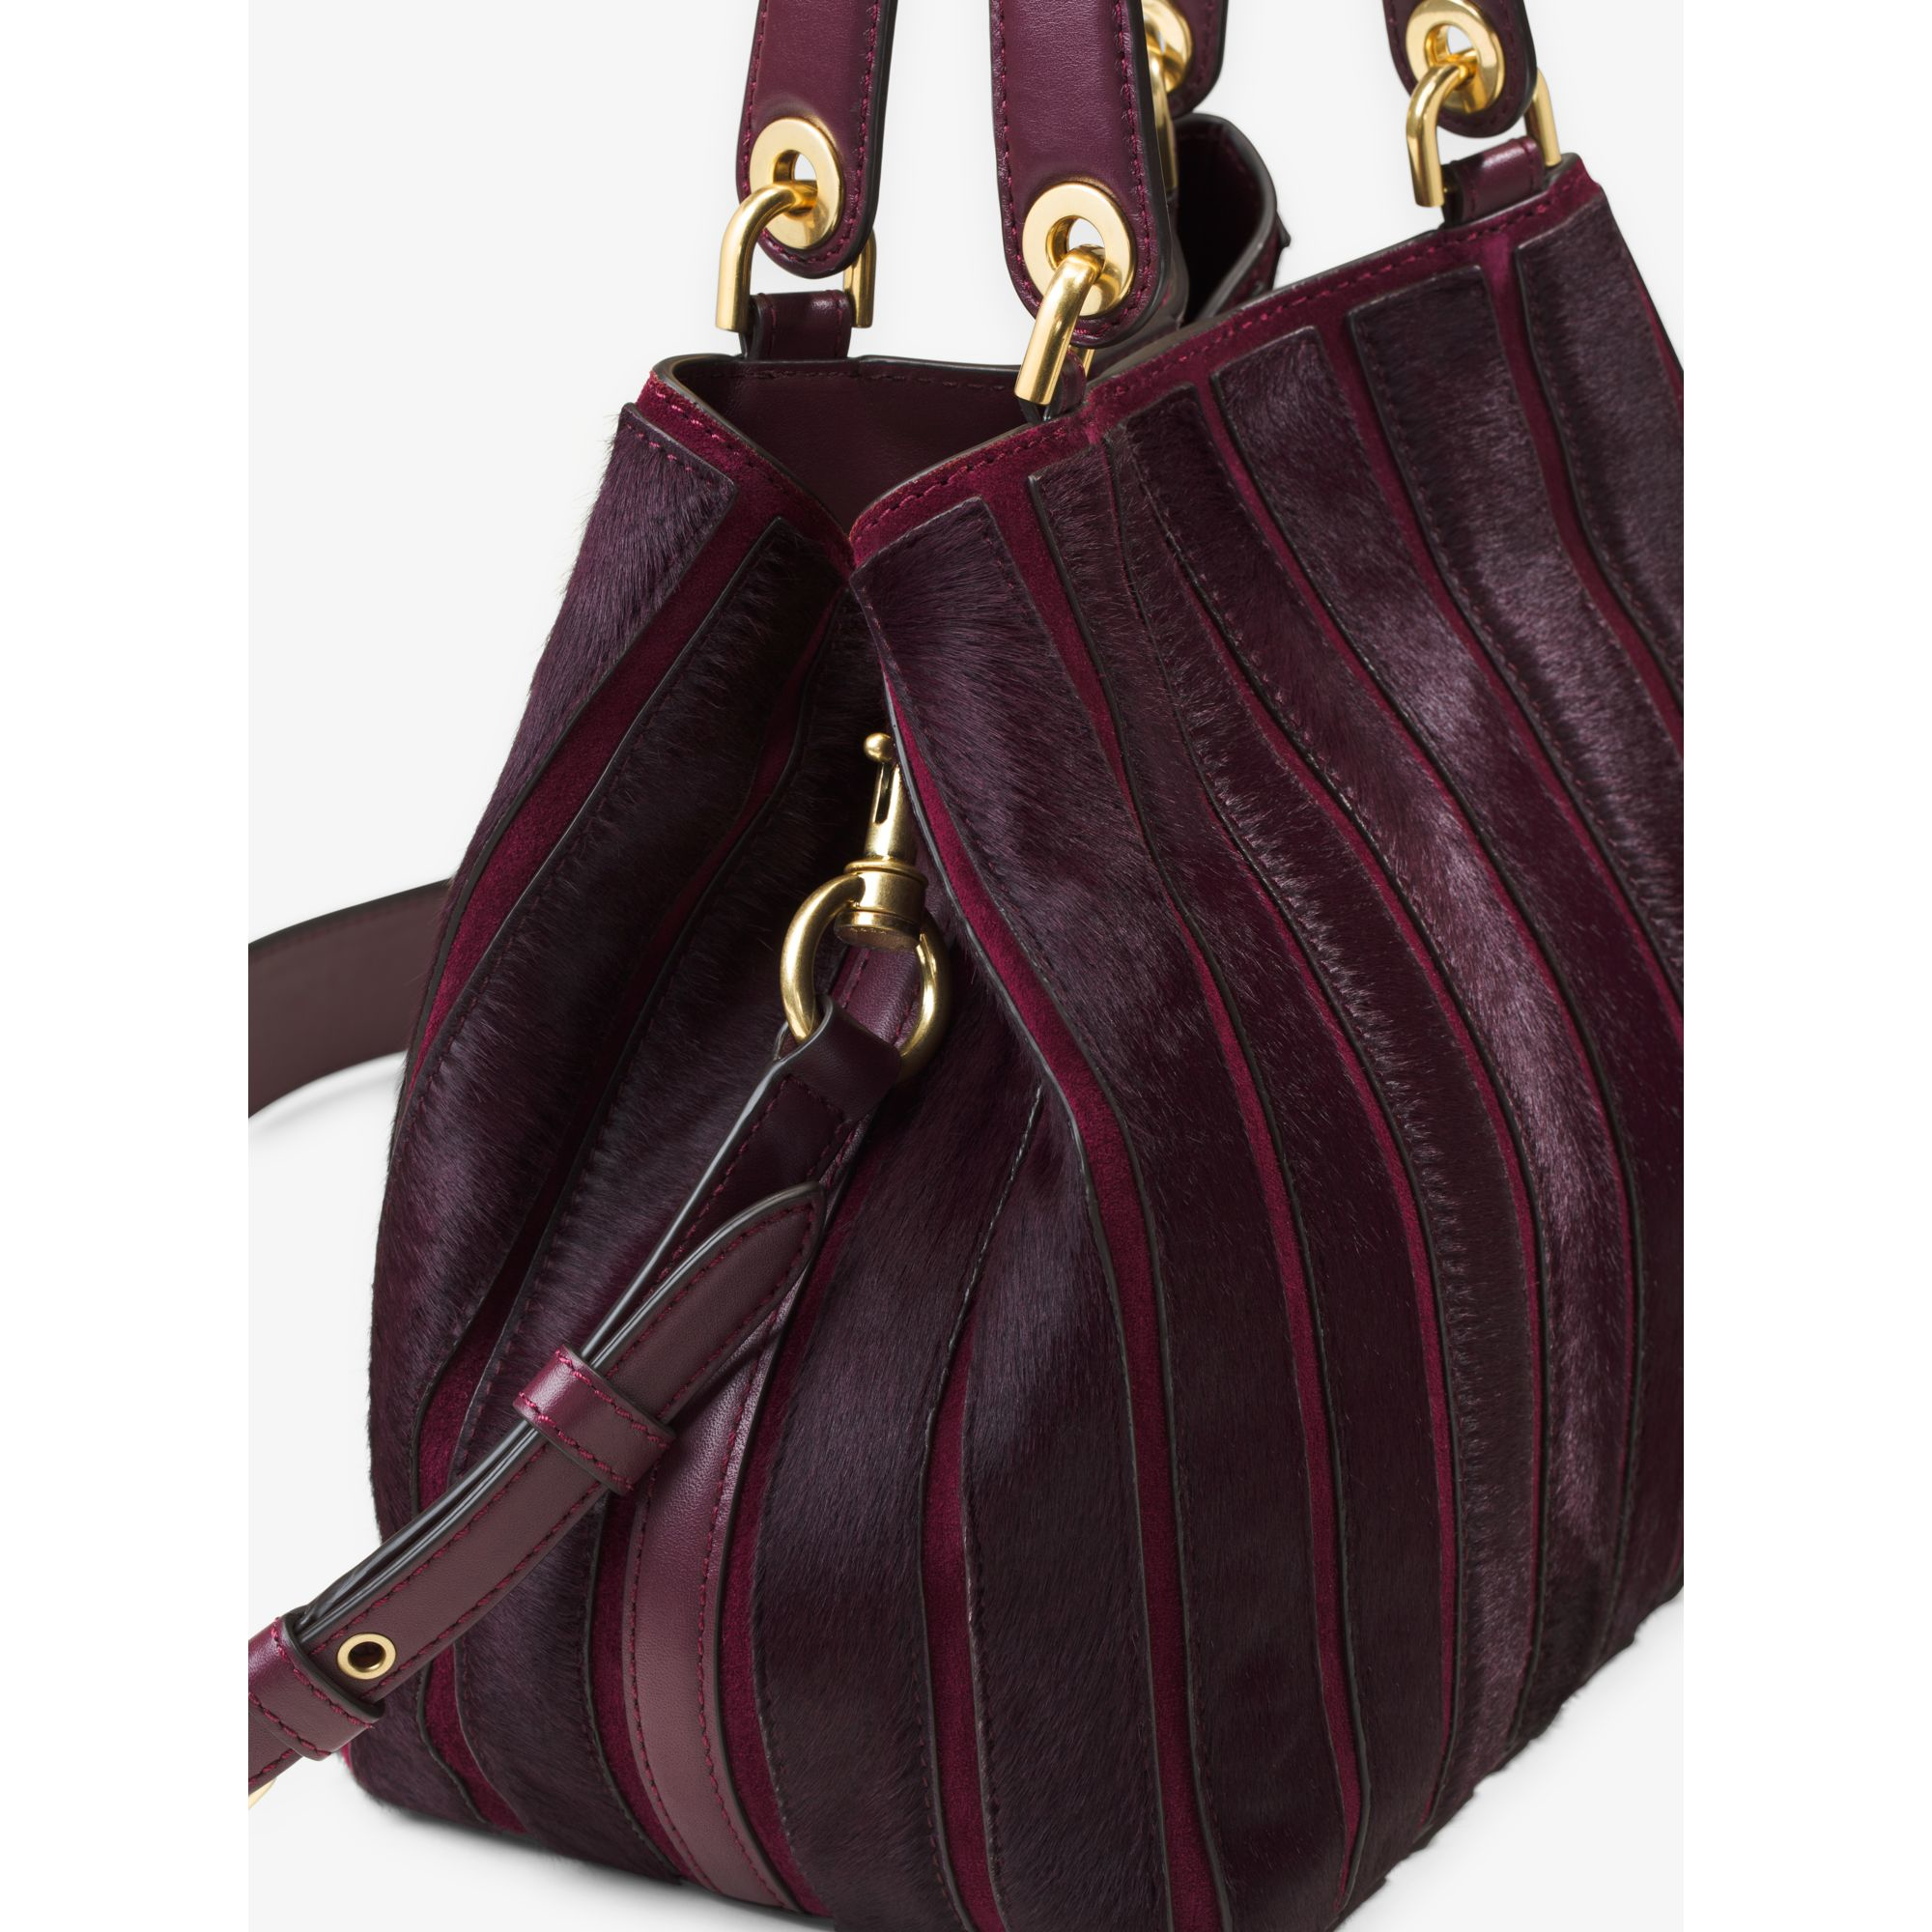 390e2c2e65c6 Michael Kors Brooklyn Medium Applique Suede Shoulder Bag in Purple ...